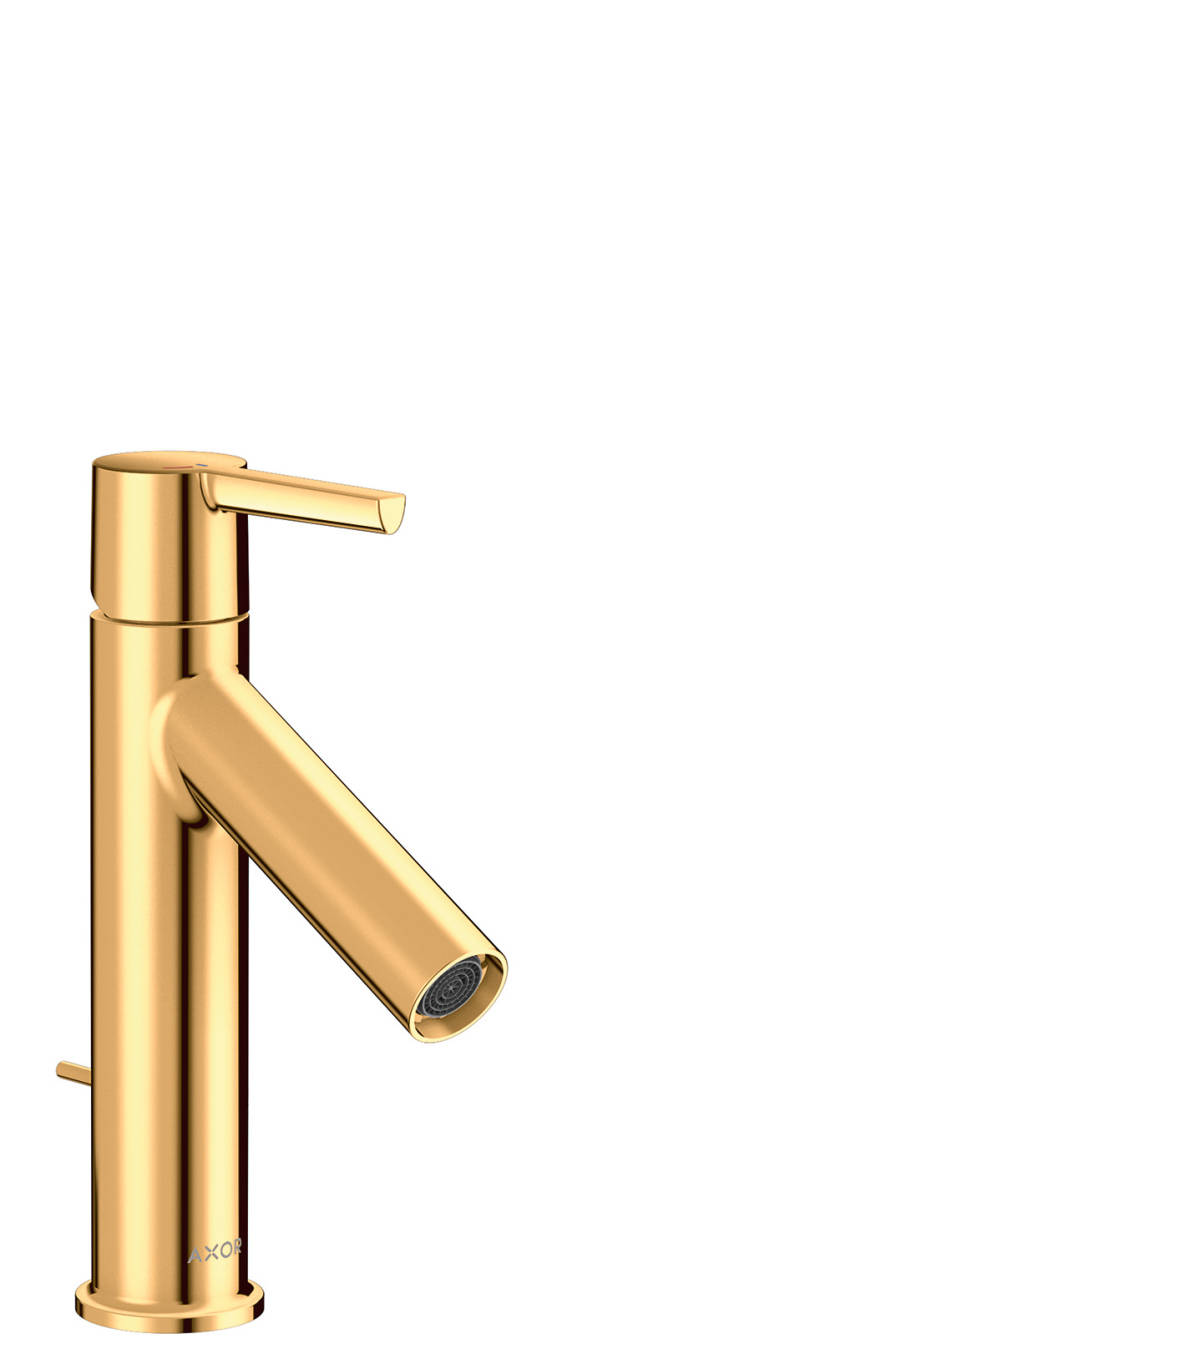 Single lever basin mixer 100 CoolStart with lever handle and pop-up waste set, Polished Gold Optic, 10007990